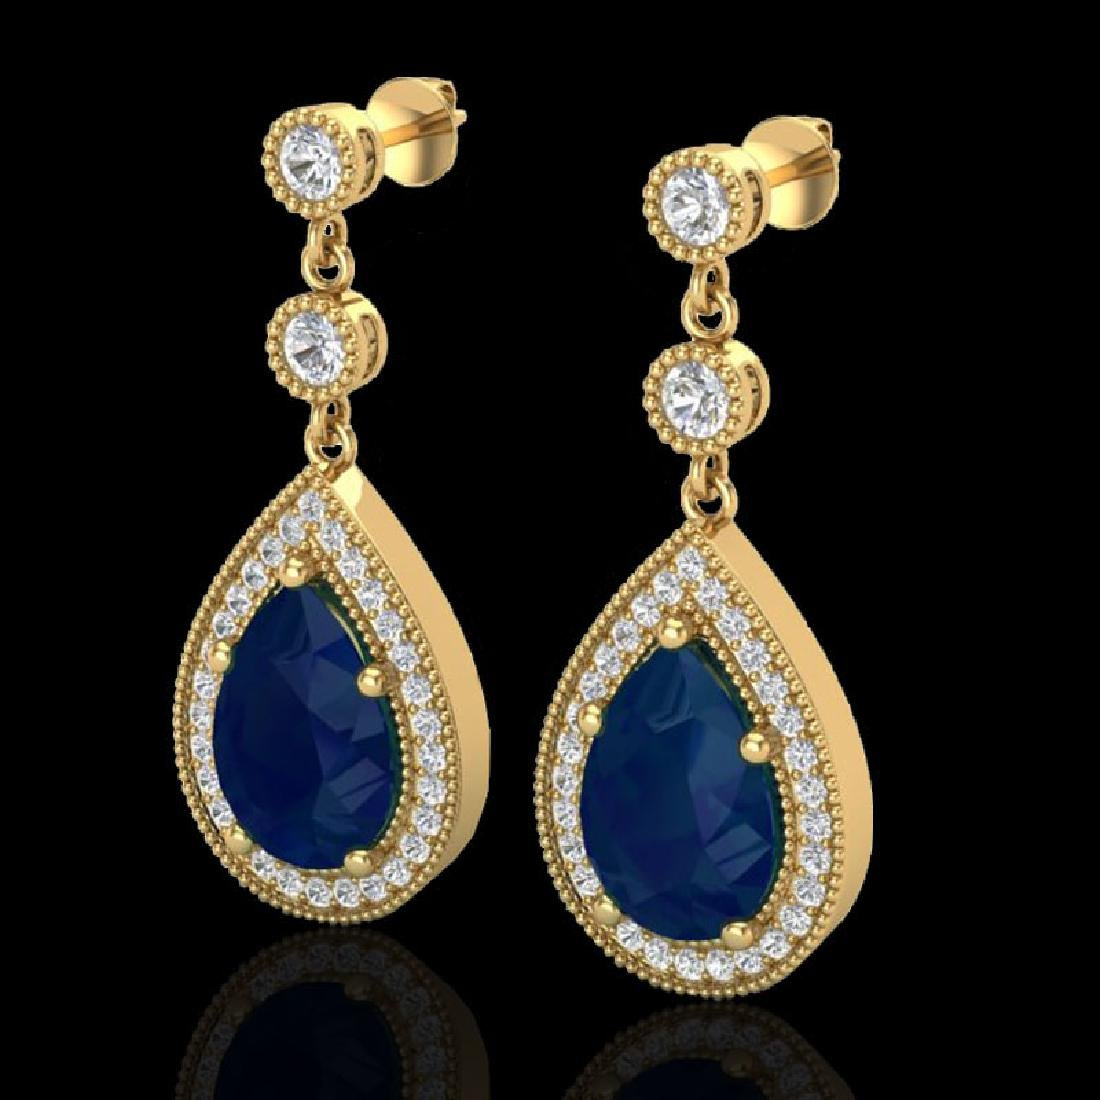 6 CTW Sapphire & Micro Pave VS/SI Diamond Earrings